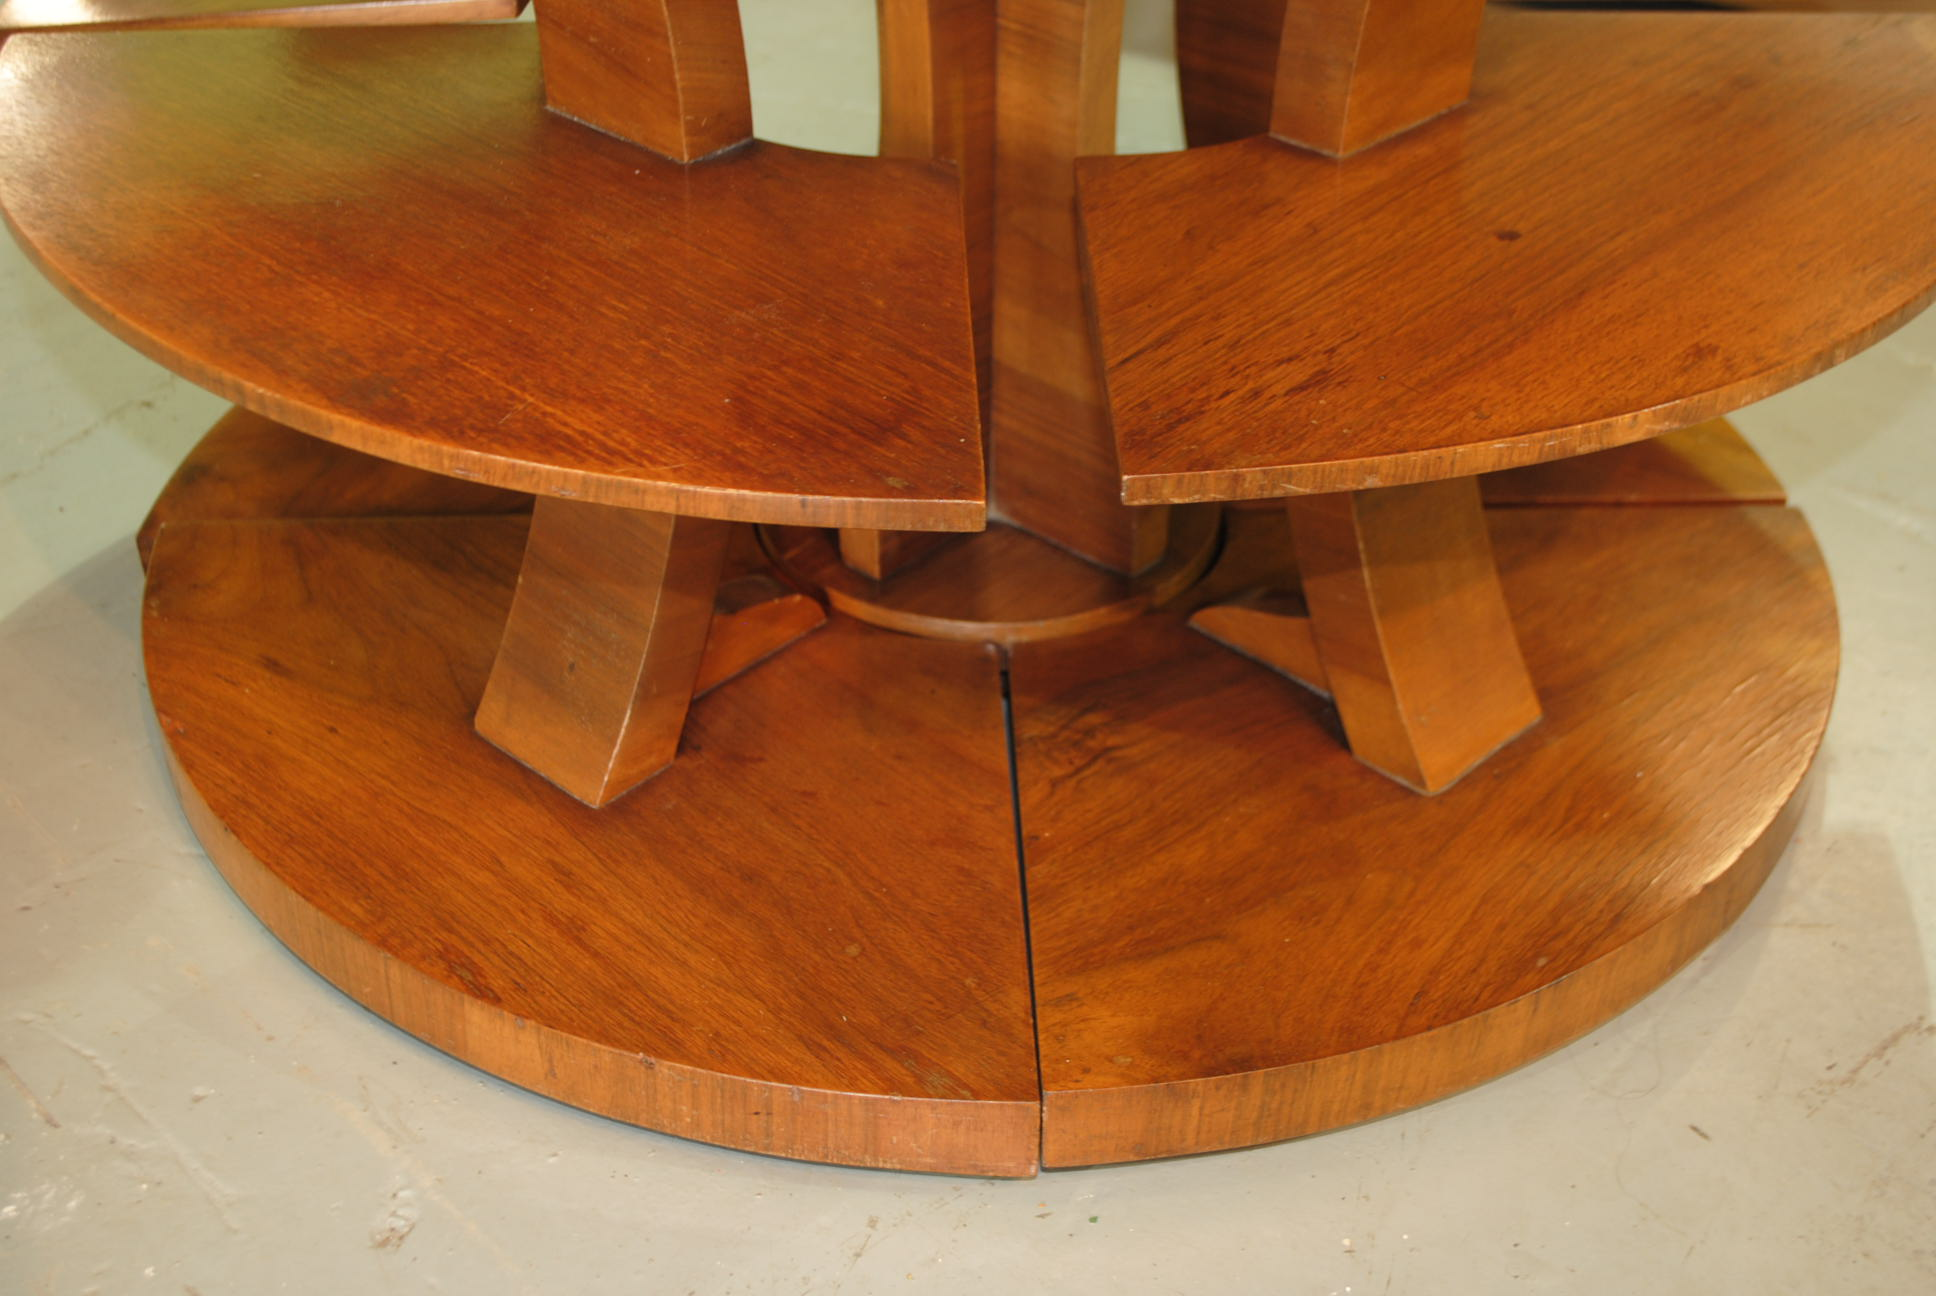 Art Deco Epstein Airplane Nest of Tables Cloud 9 Art Deco